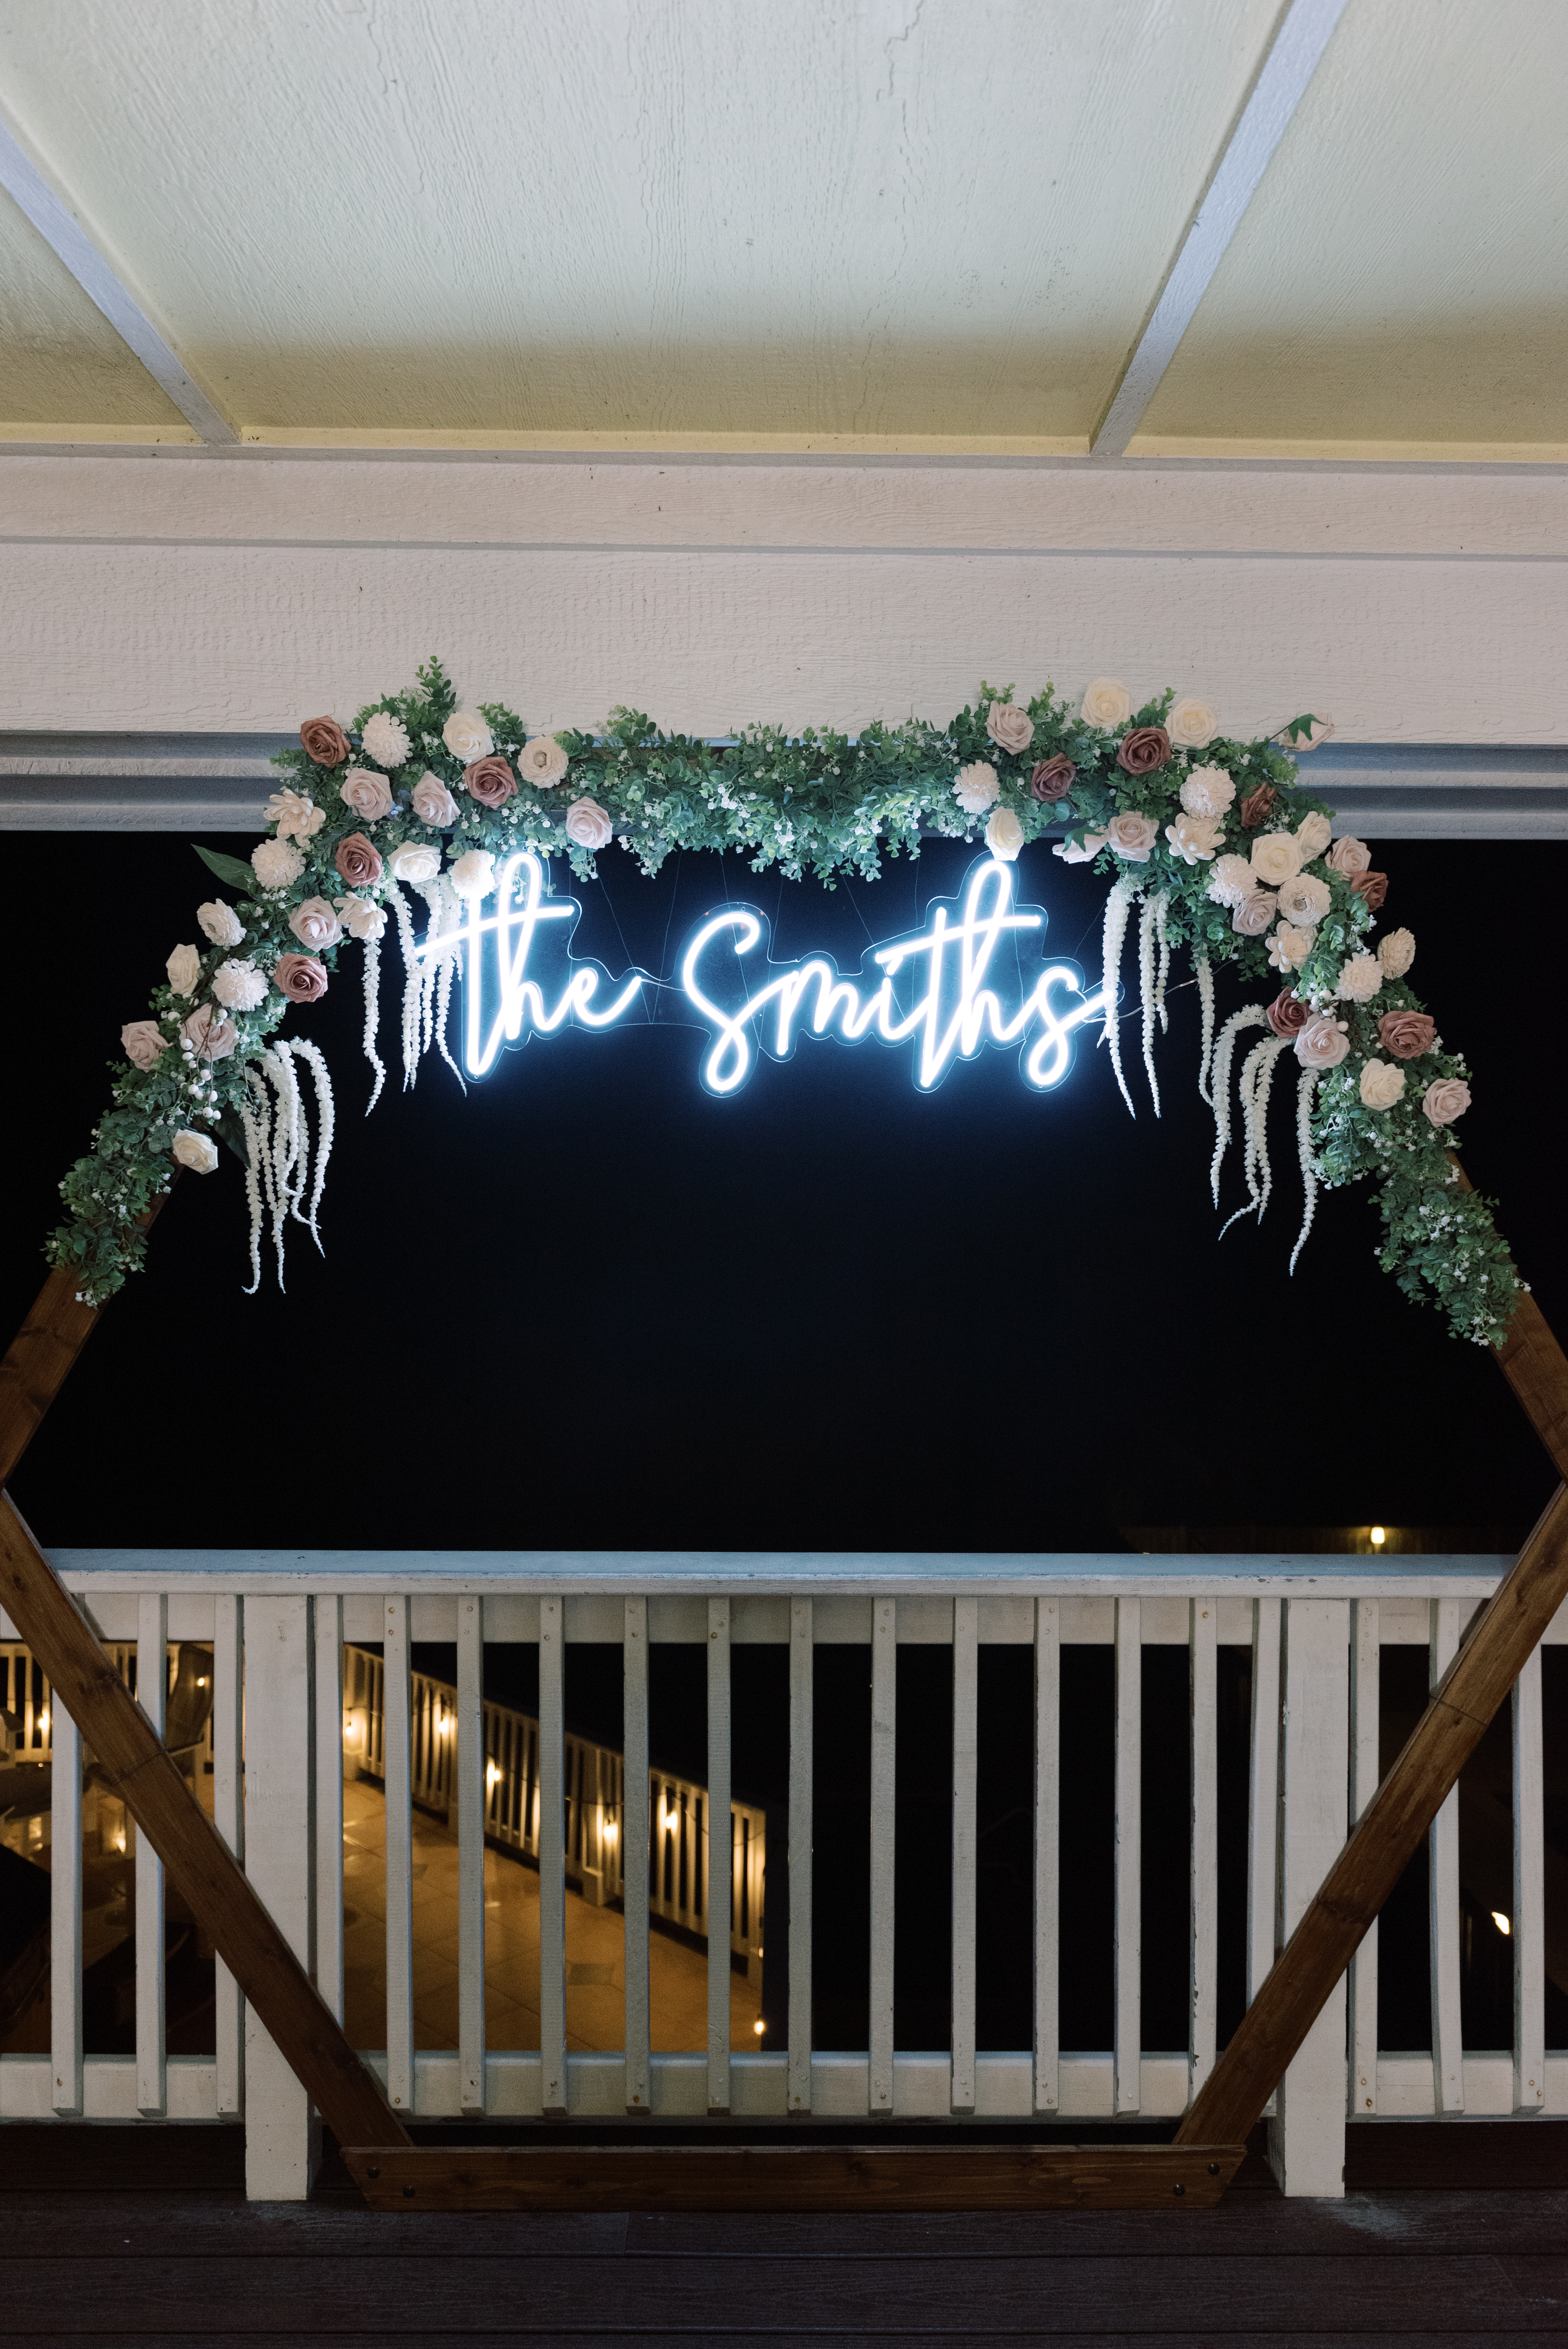 Neon Light up Sign - The Smiths